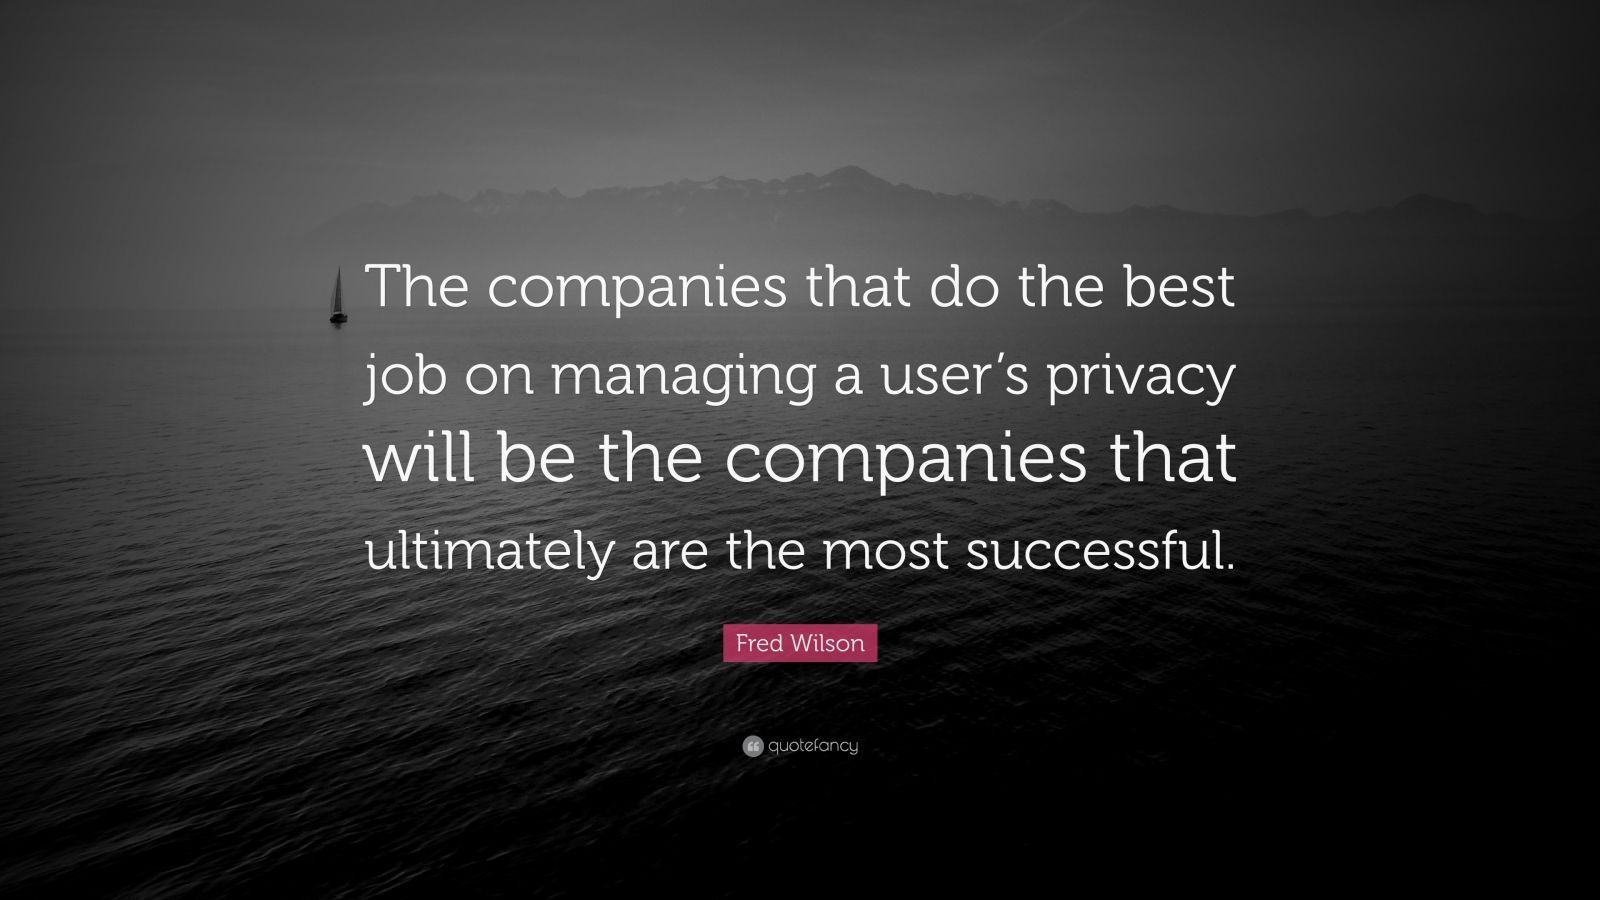 """Fred Wilson Quote: """"The companies that do the best job on managing a user's privacy will be the companies that ultimately are the most successful."""""""